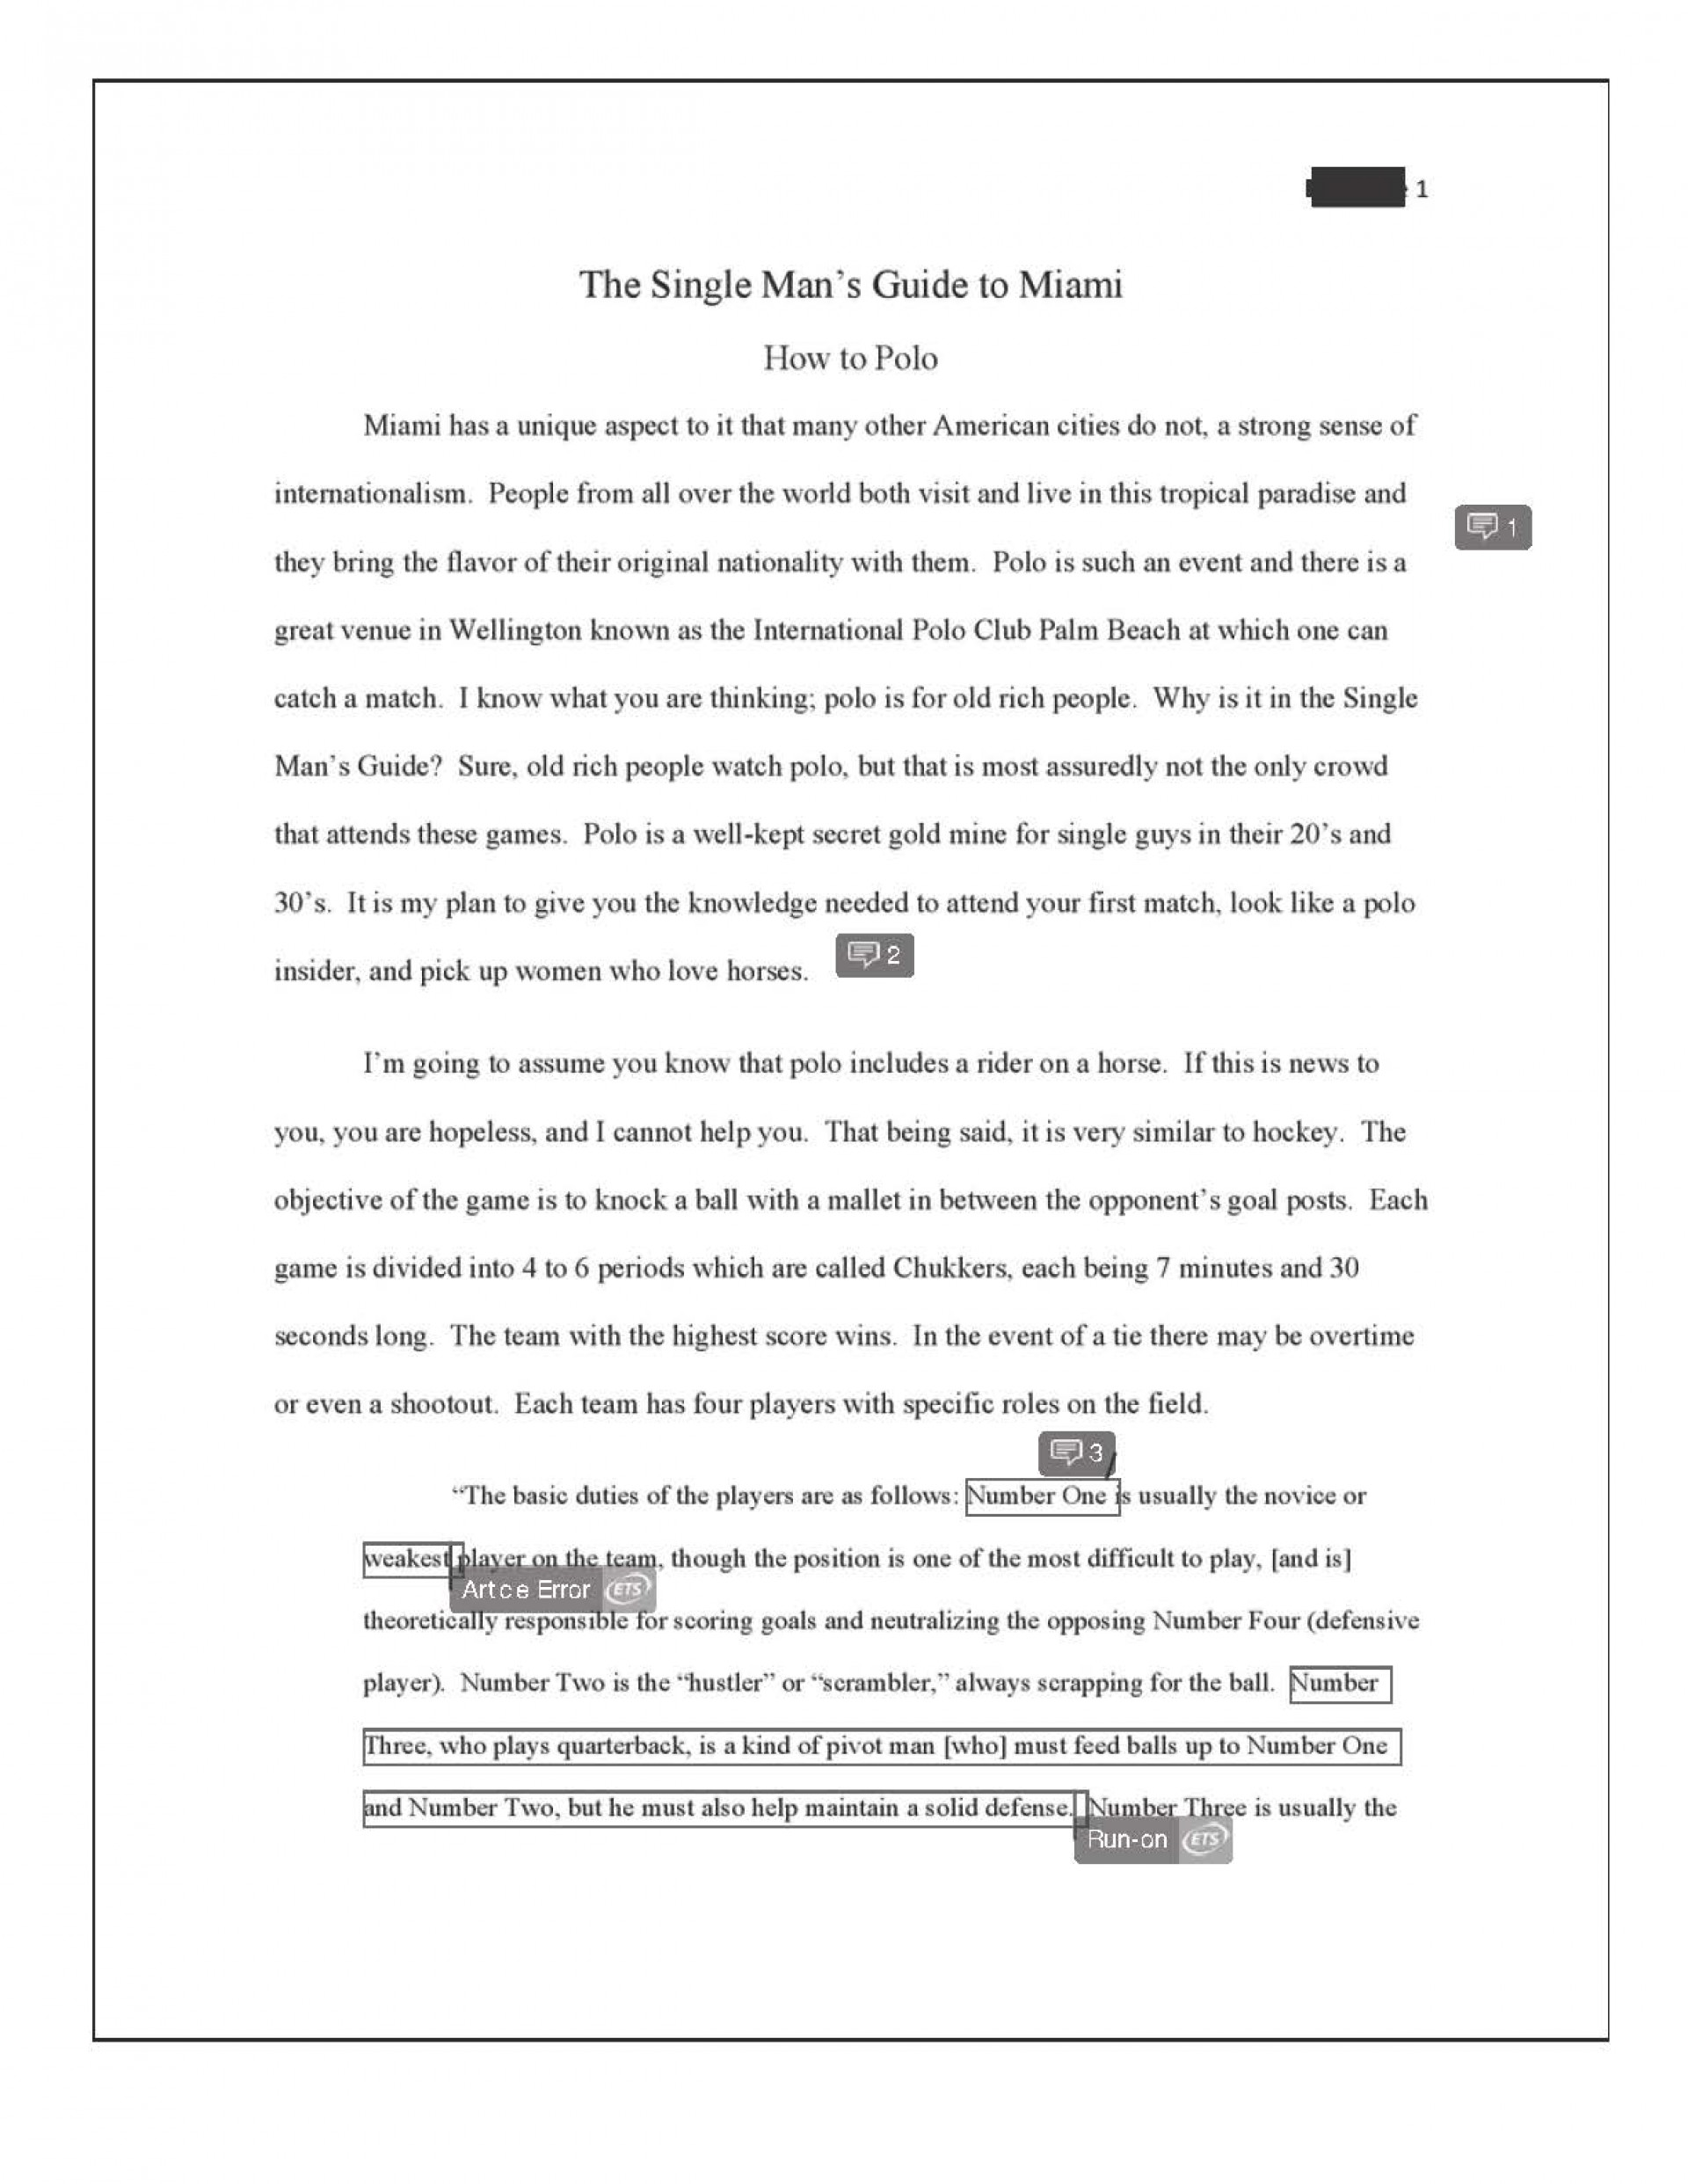 005 Informative Essay Topics Essays Sample Funny Argumentative For Middle School Final How To Polo Redacted P College Students Hilarious Good Remarkable Prompt 4th Grade Prompts High Expository 1920